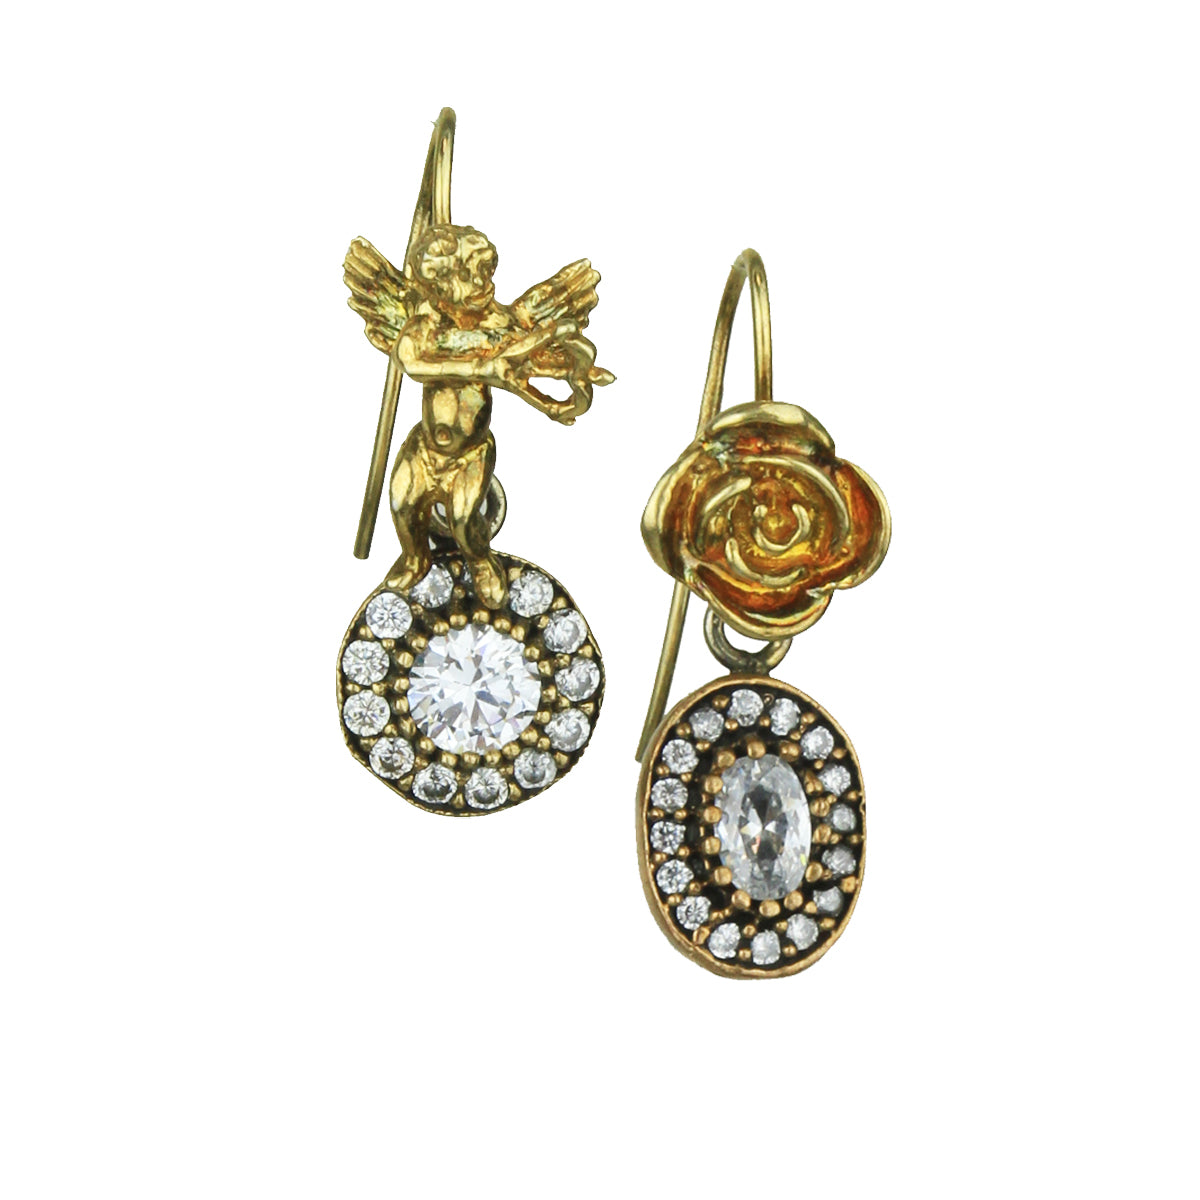 Aylin Gold Plated 925 Sterling Silver Earrings and Crystal Drops